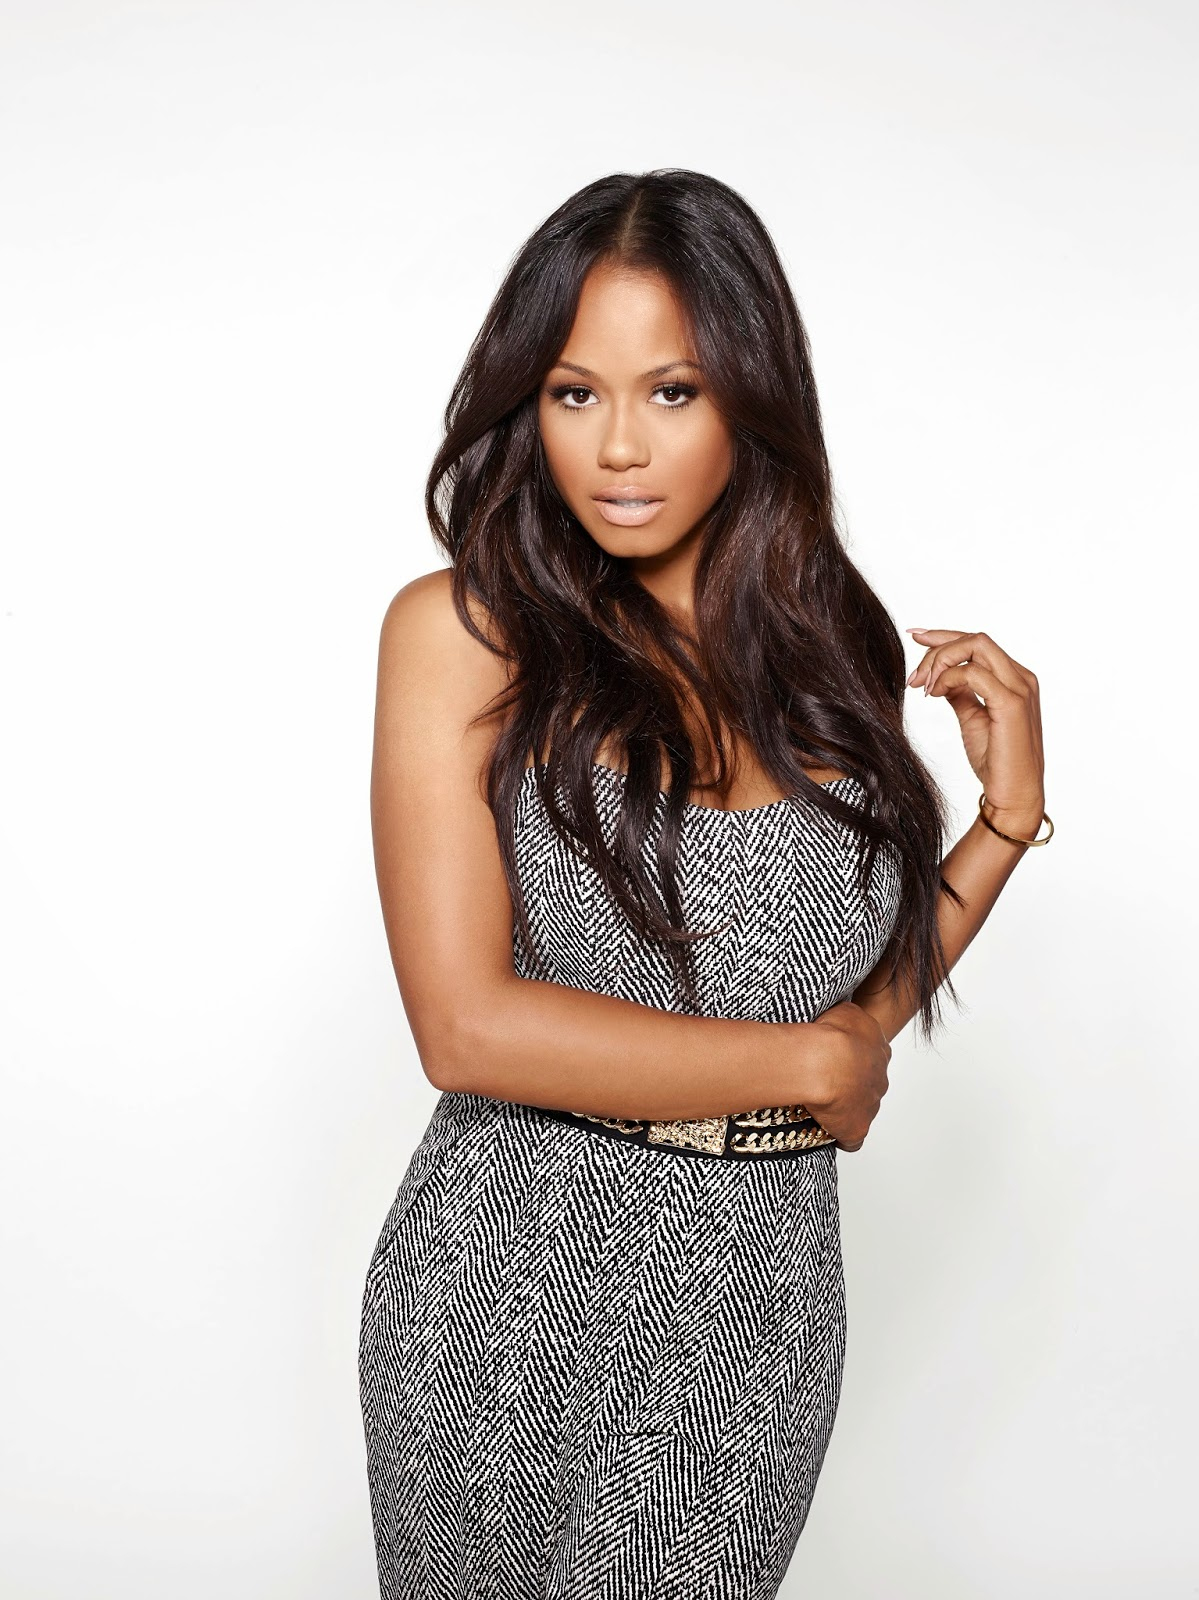 CHRISTINA MILIAN CRANKS UP THE VOLUME ON HER LIFE AND CAREER IN NEW REALITY SHOW